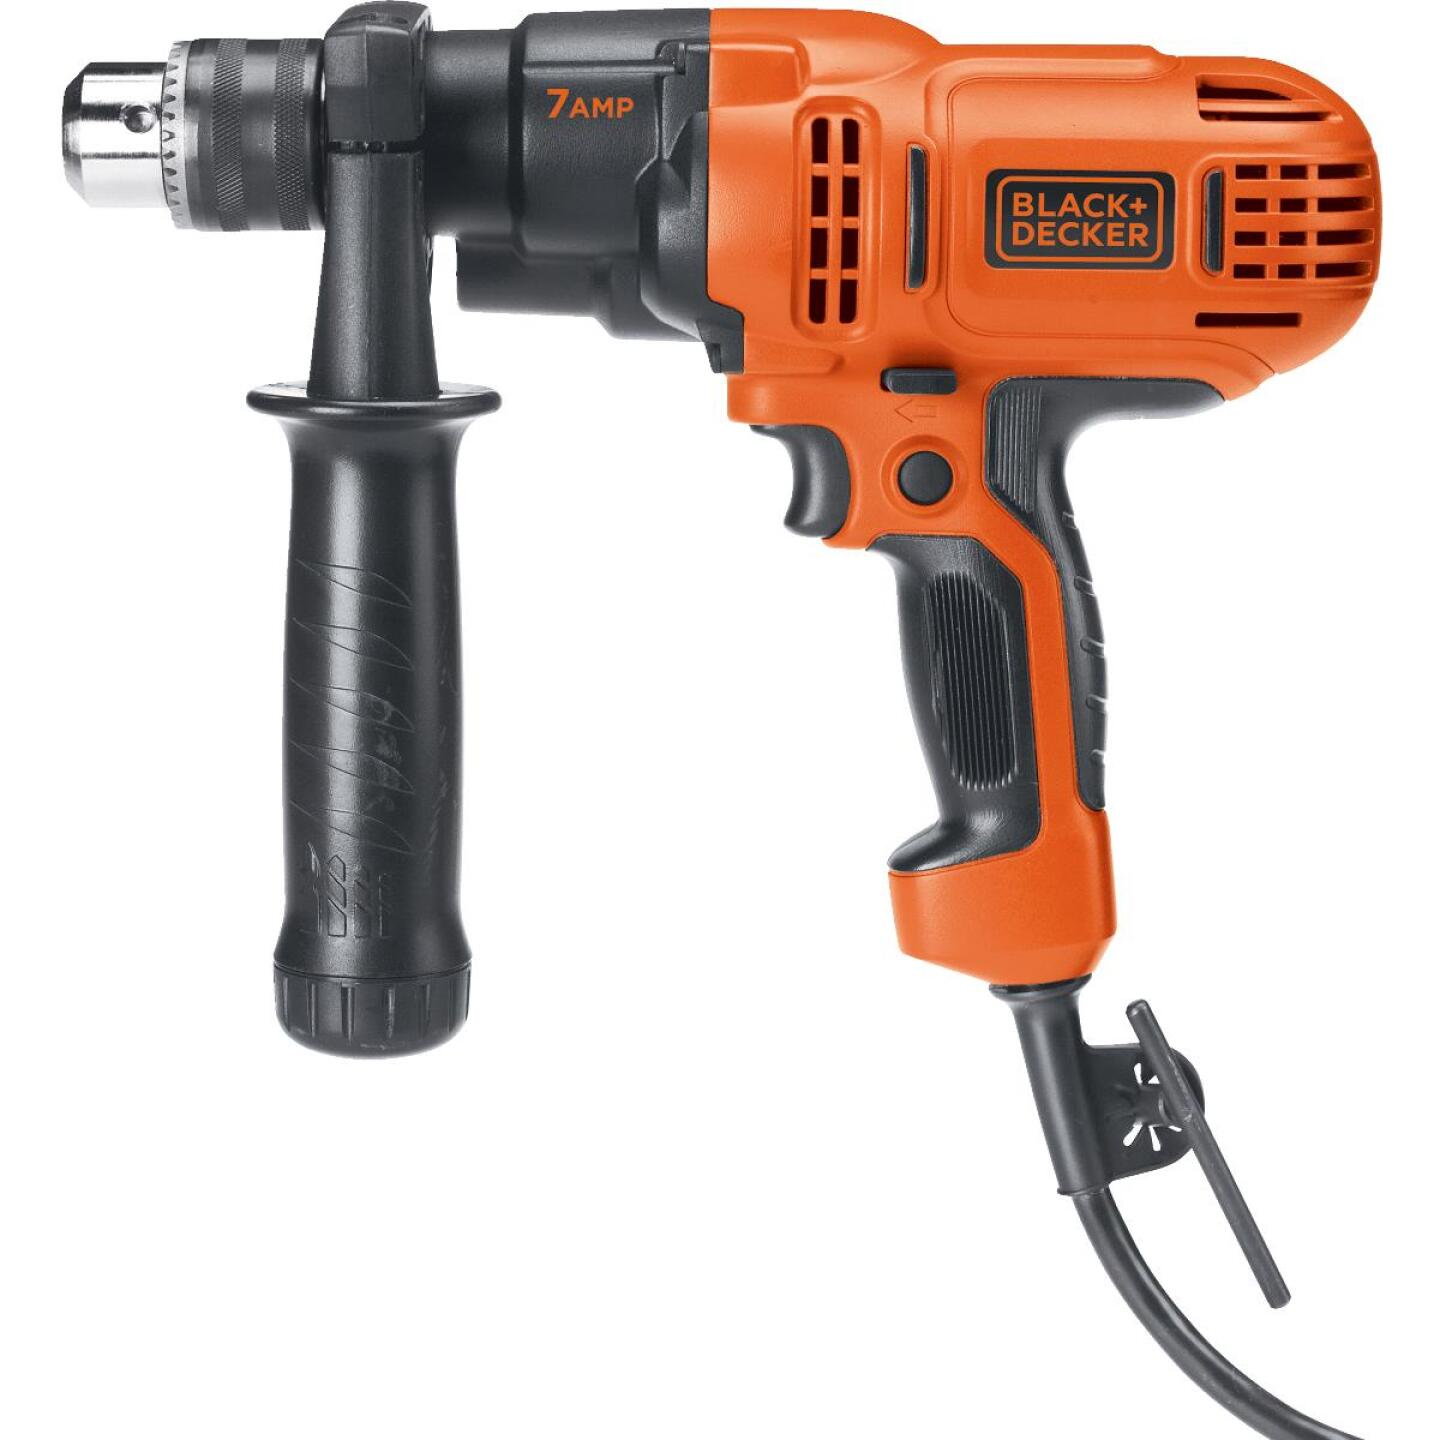 Black & Decker 1/2 In. 7-Amp Keyed Electric Drill/Driver Image 2